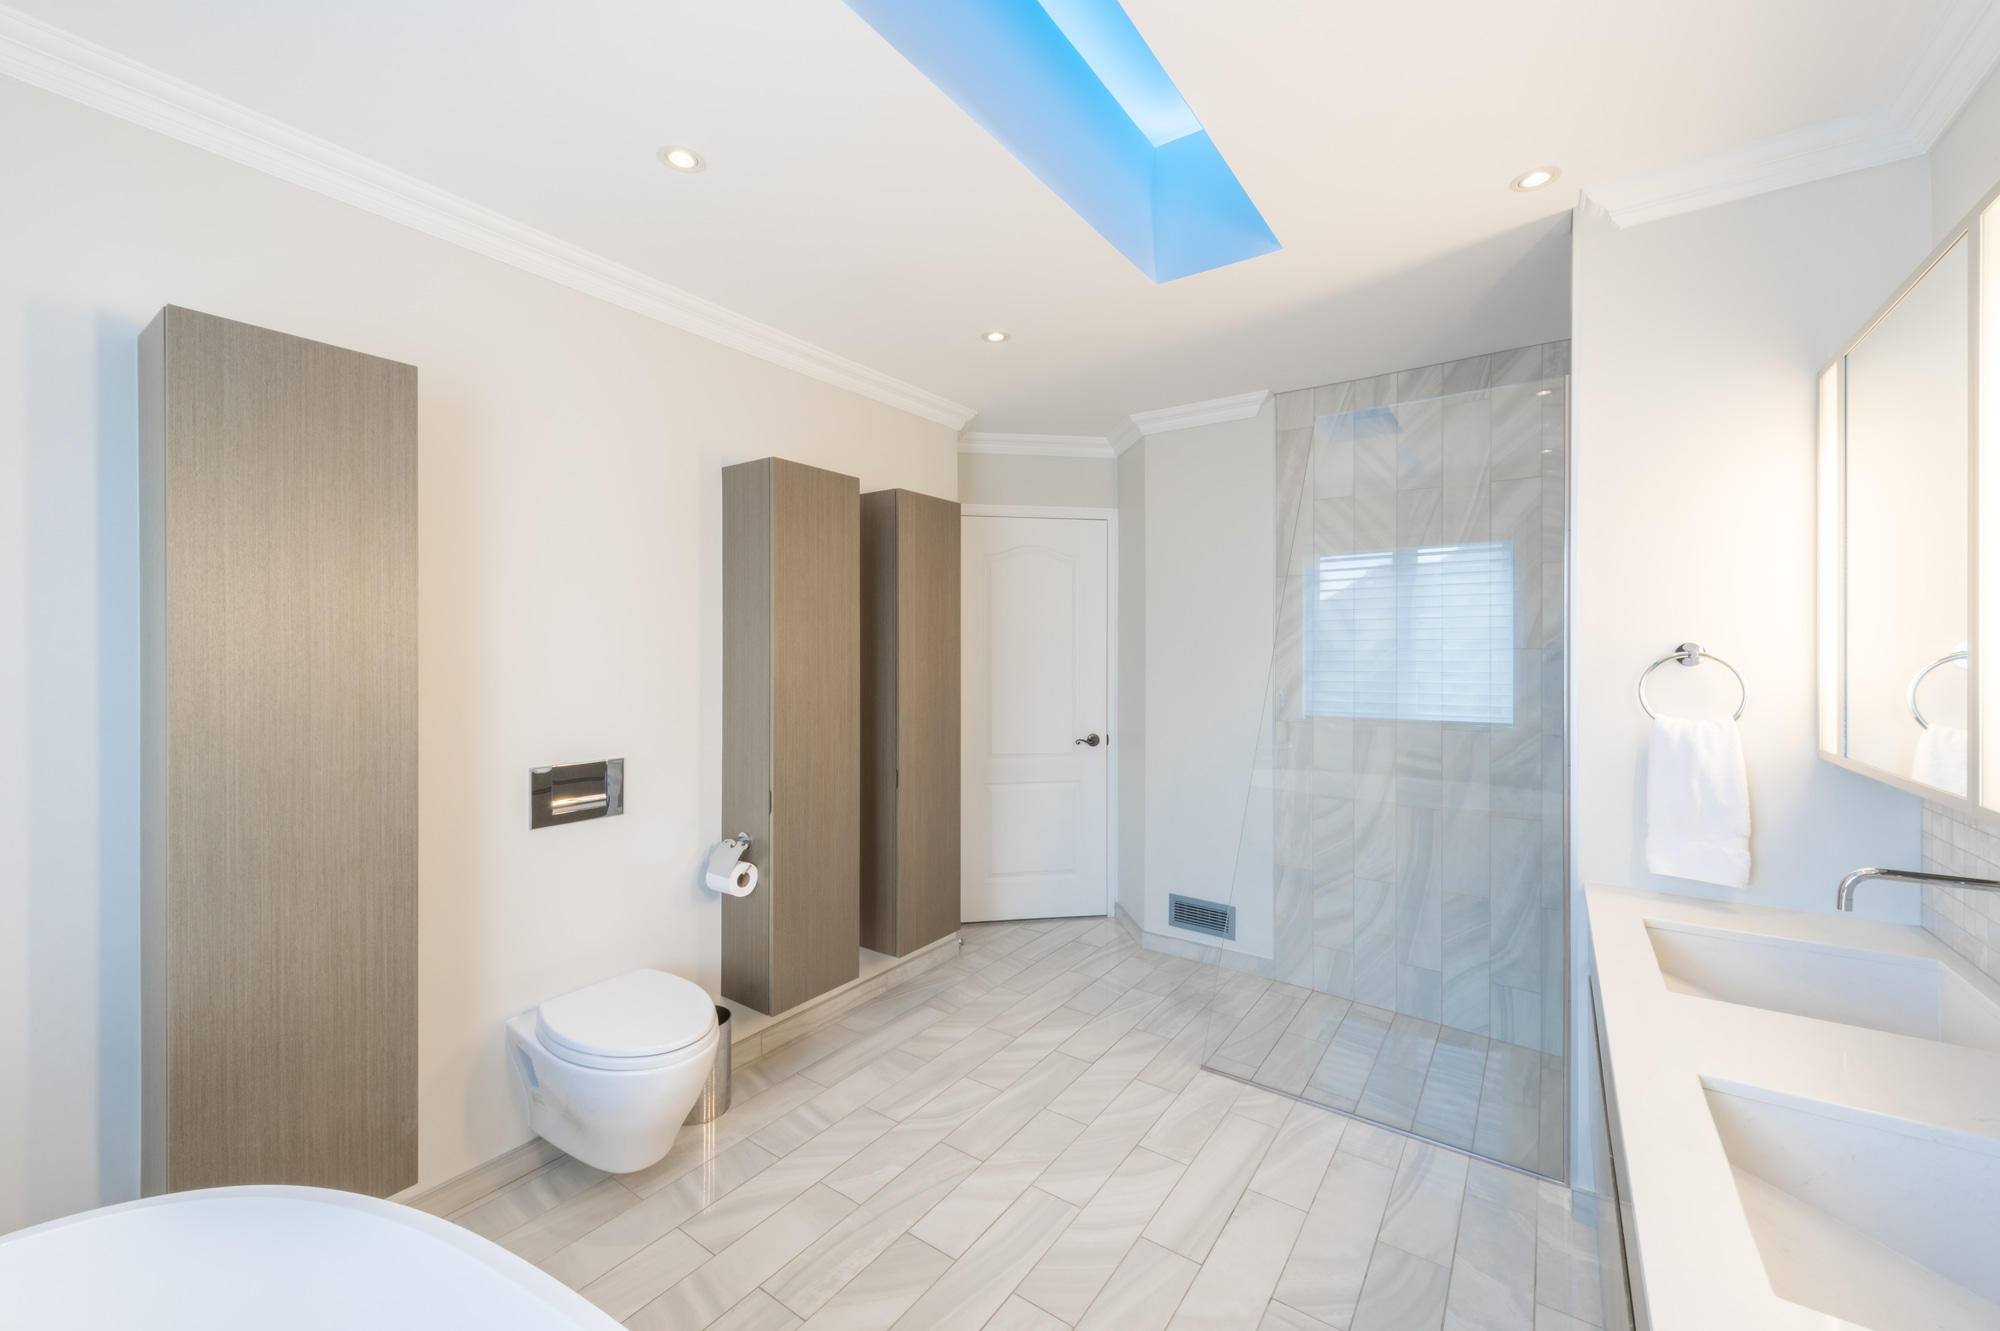 modern bathroom with glass shower and built-in cabinets